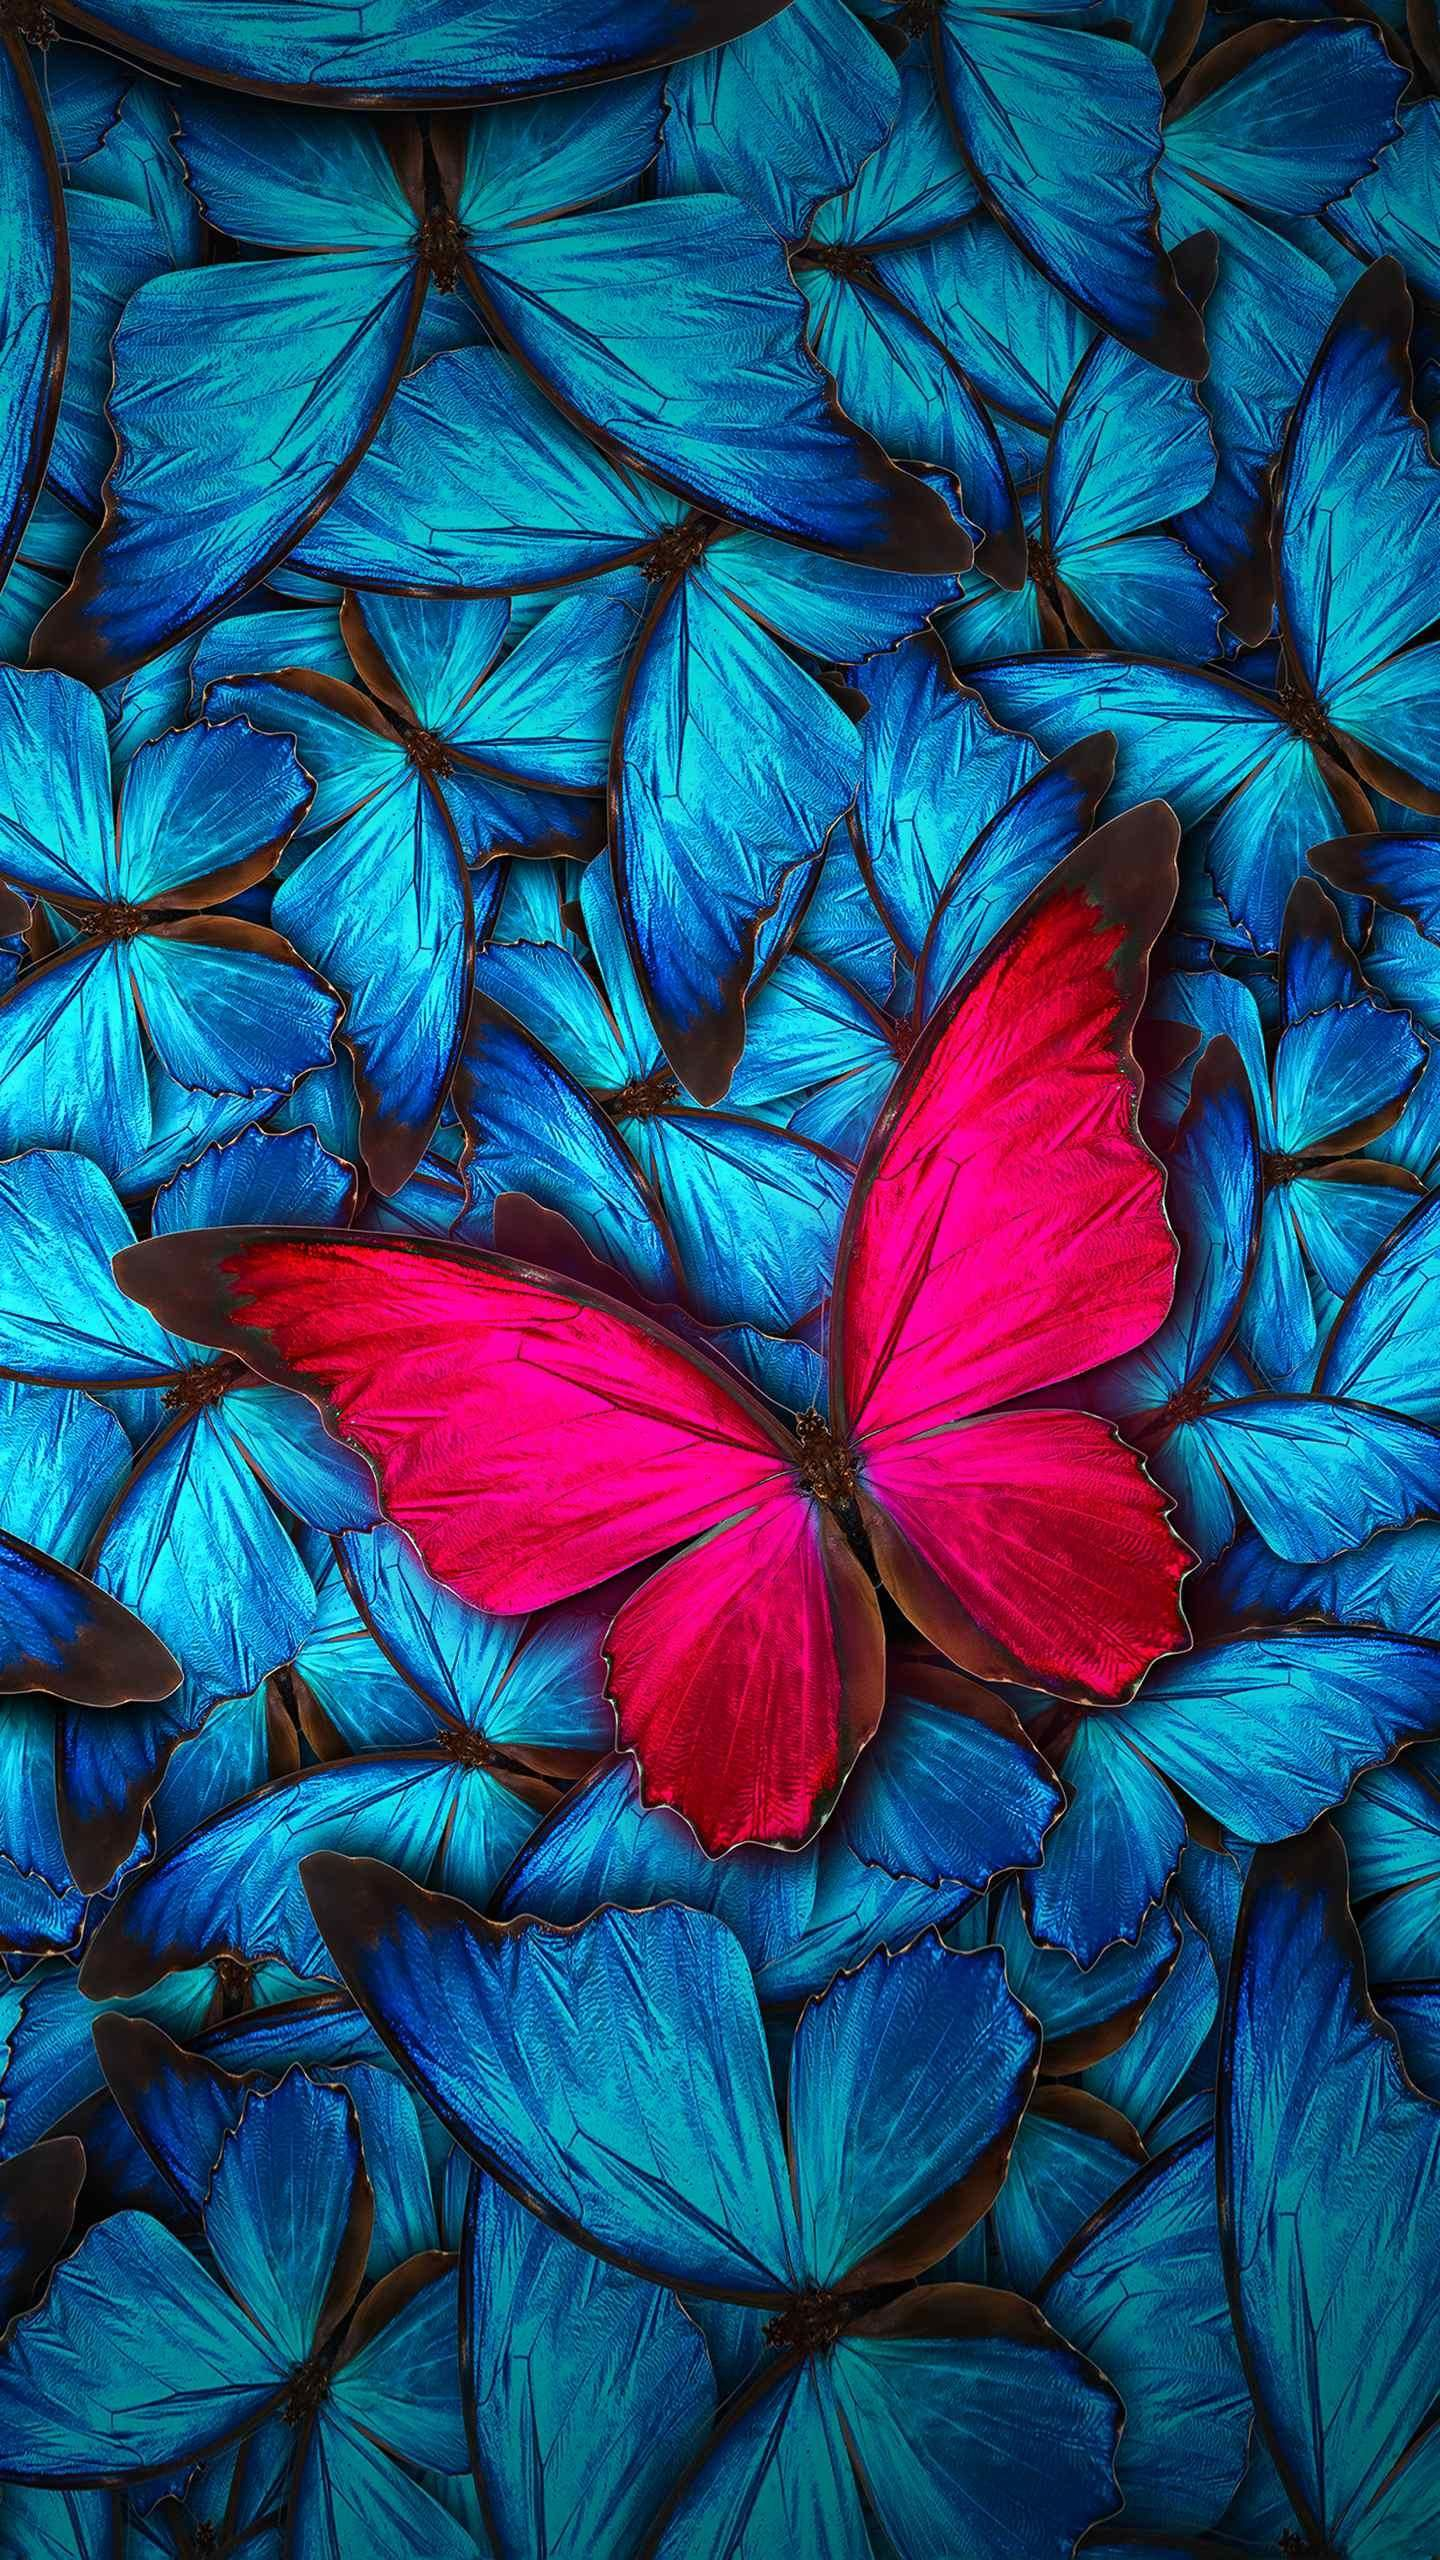 Butterfly. (With images) Butterfly wallpaper, Cute